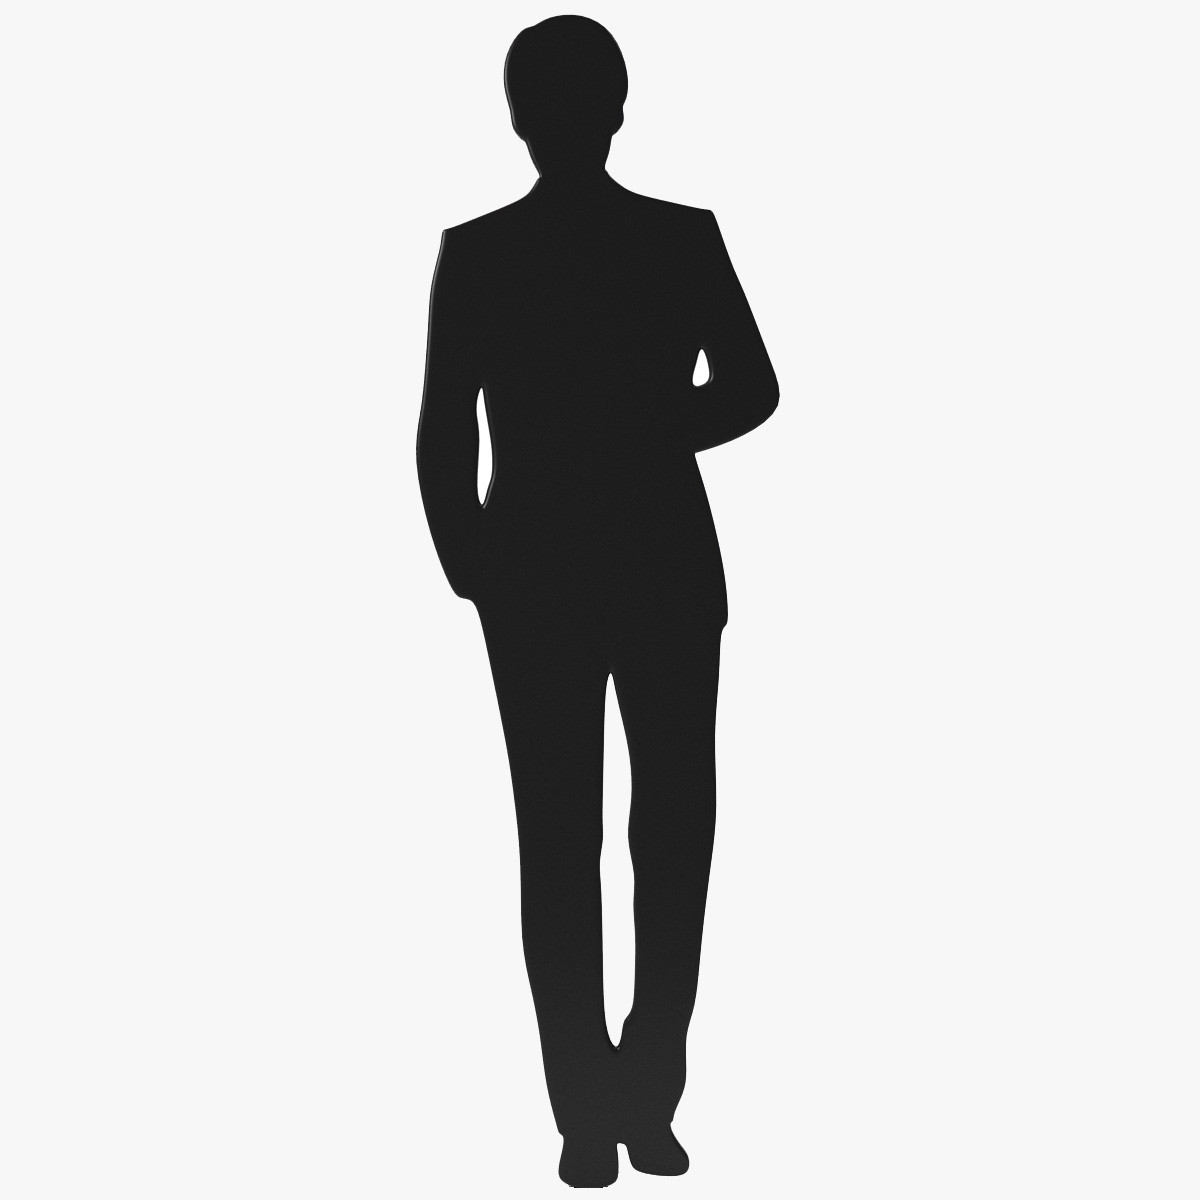 1200x1200 19 Psd Man In Suit Silhouette Images